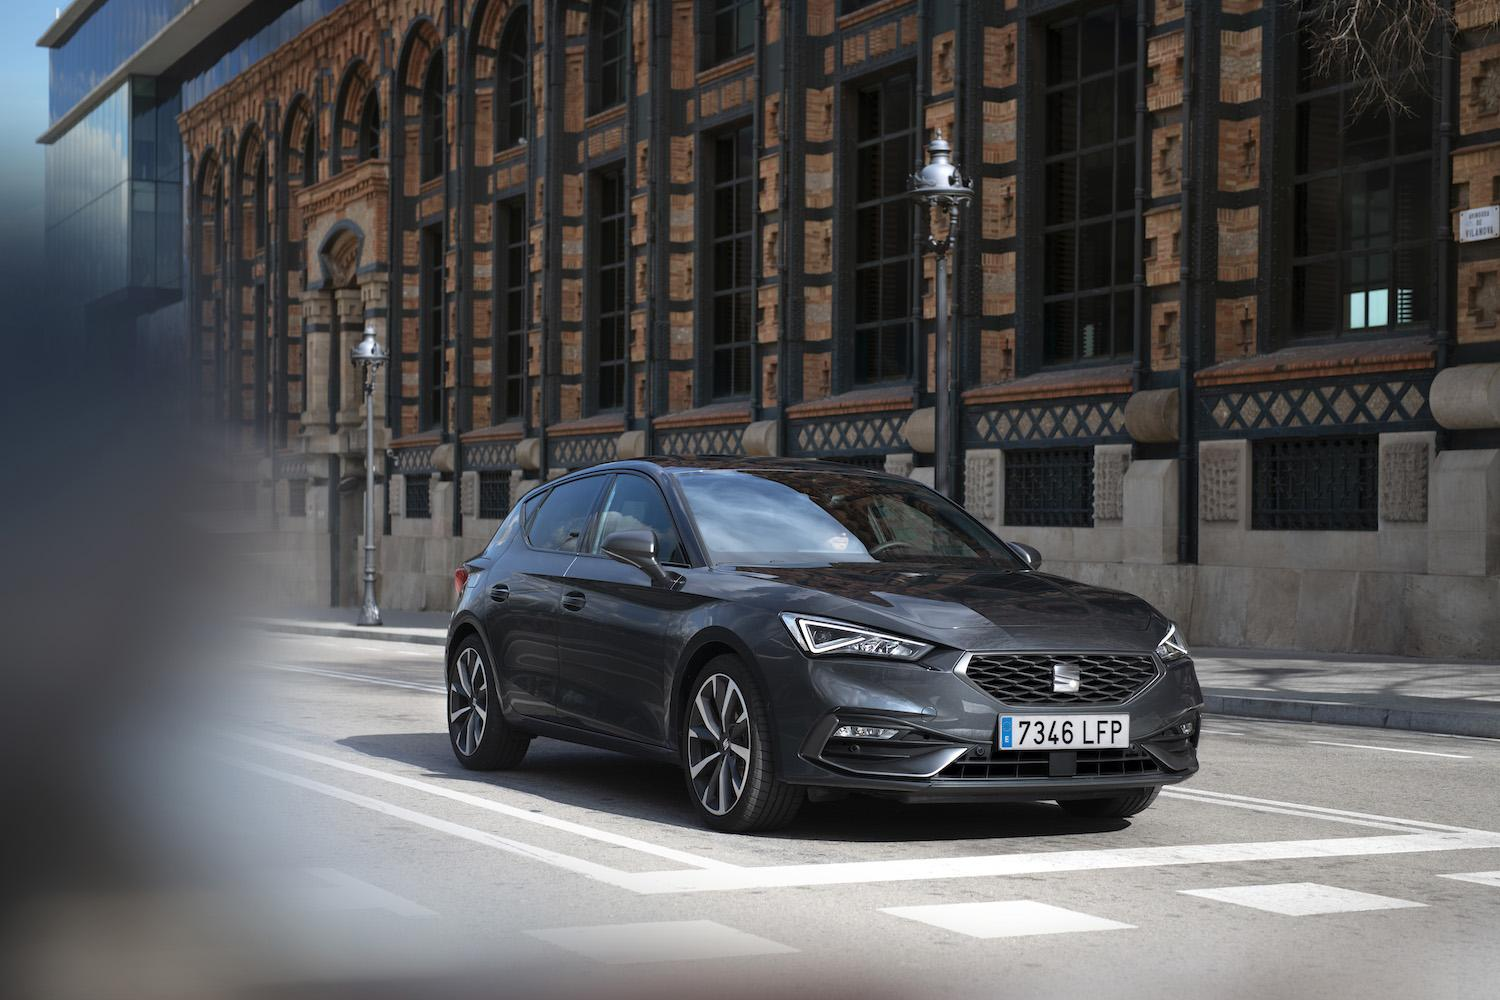 Seat's new Leon features sharp styling.